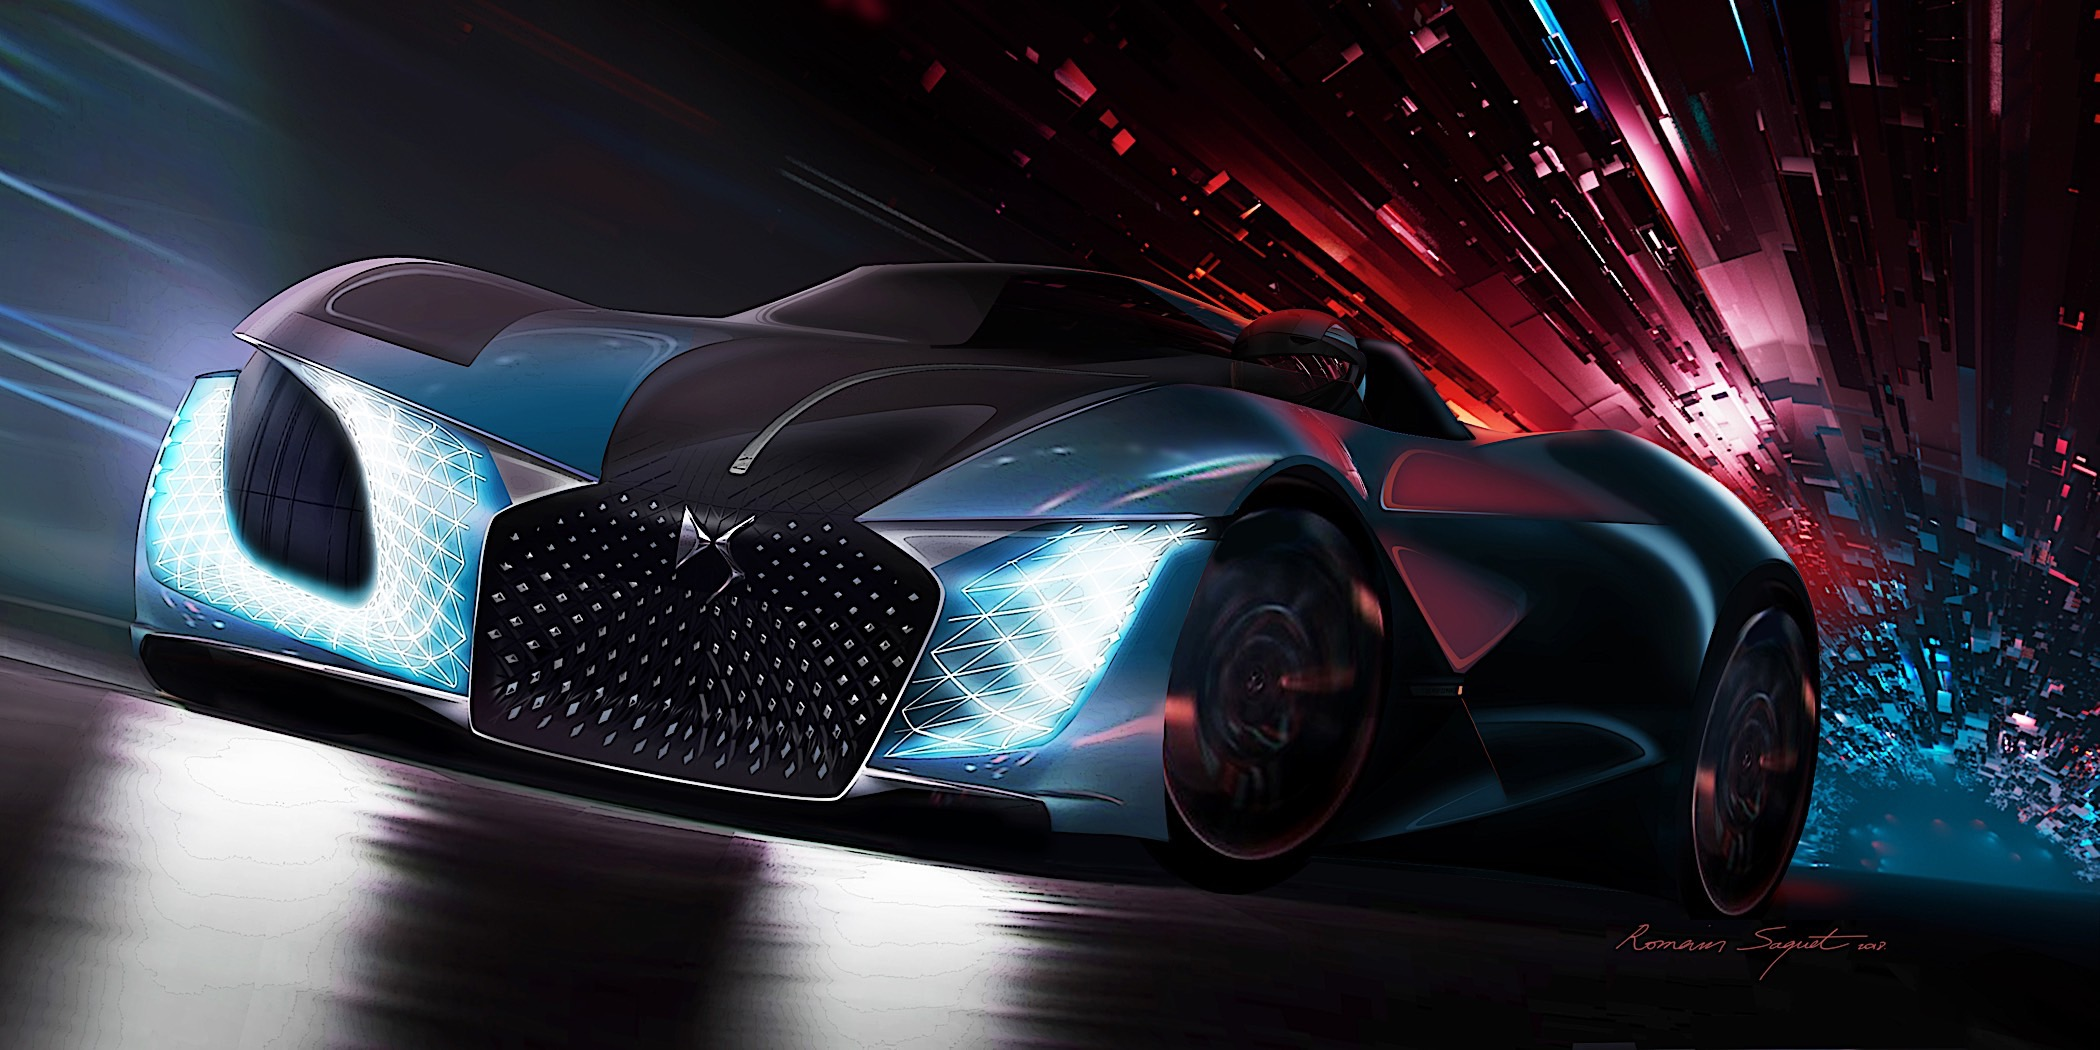 Tense Concept Splits 1360 HP Between Future Personalities